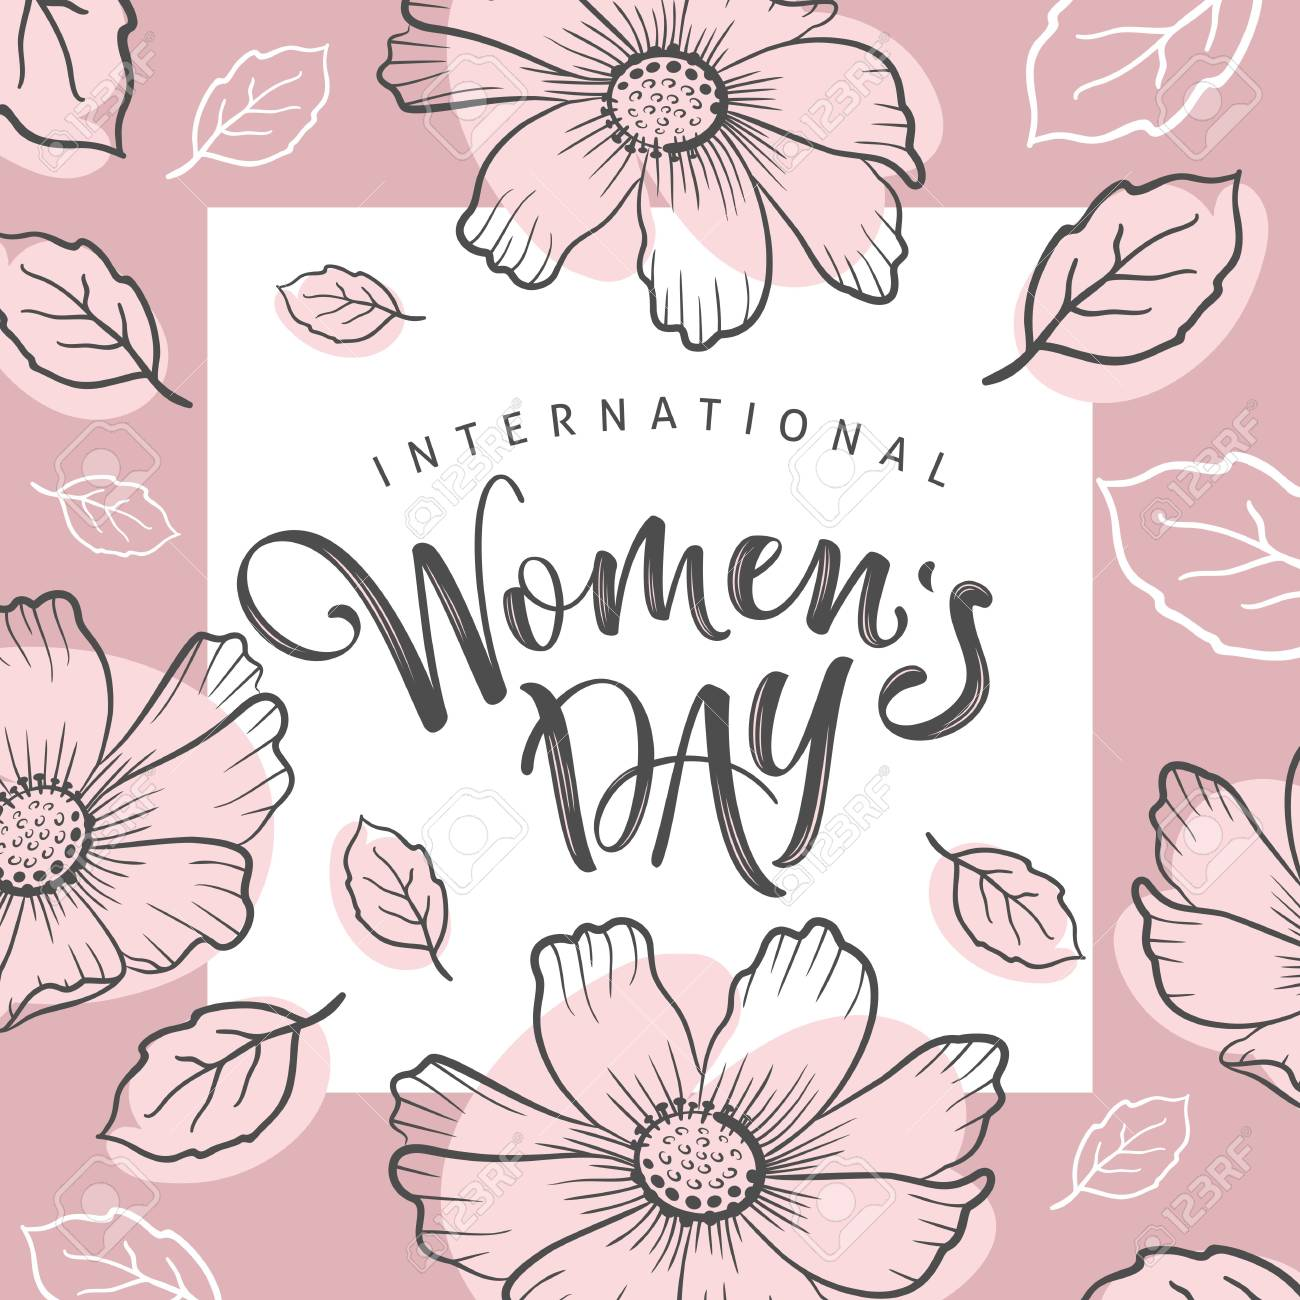 International Womens Day Greeting Card Calligraphic Hand Written